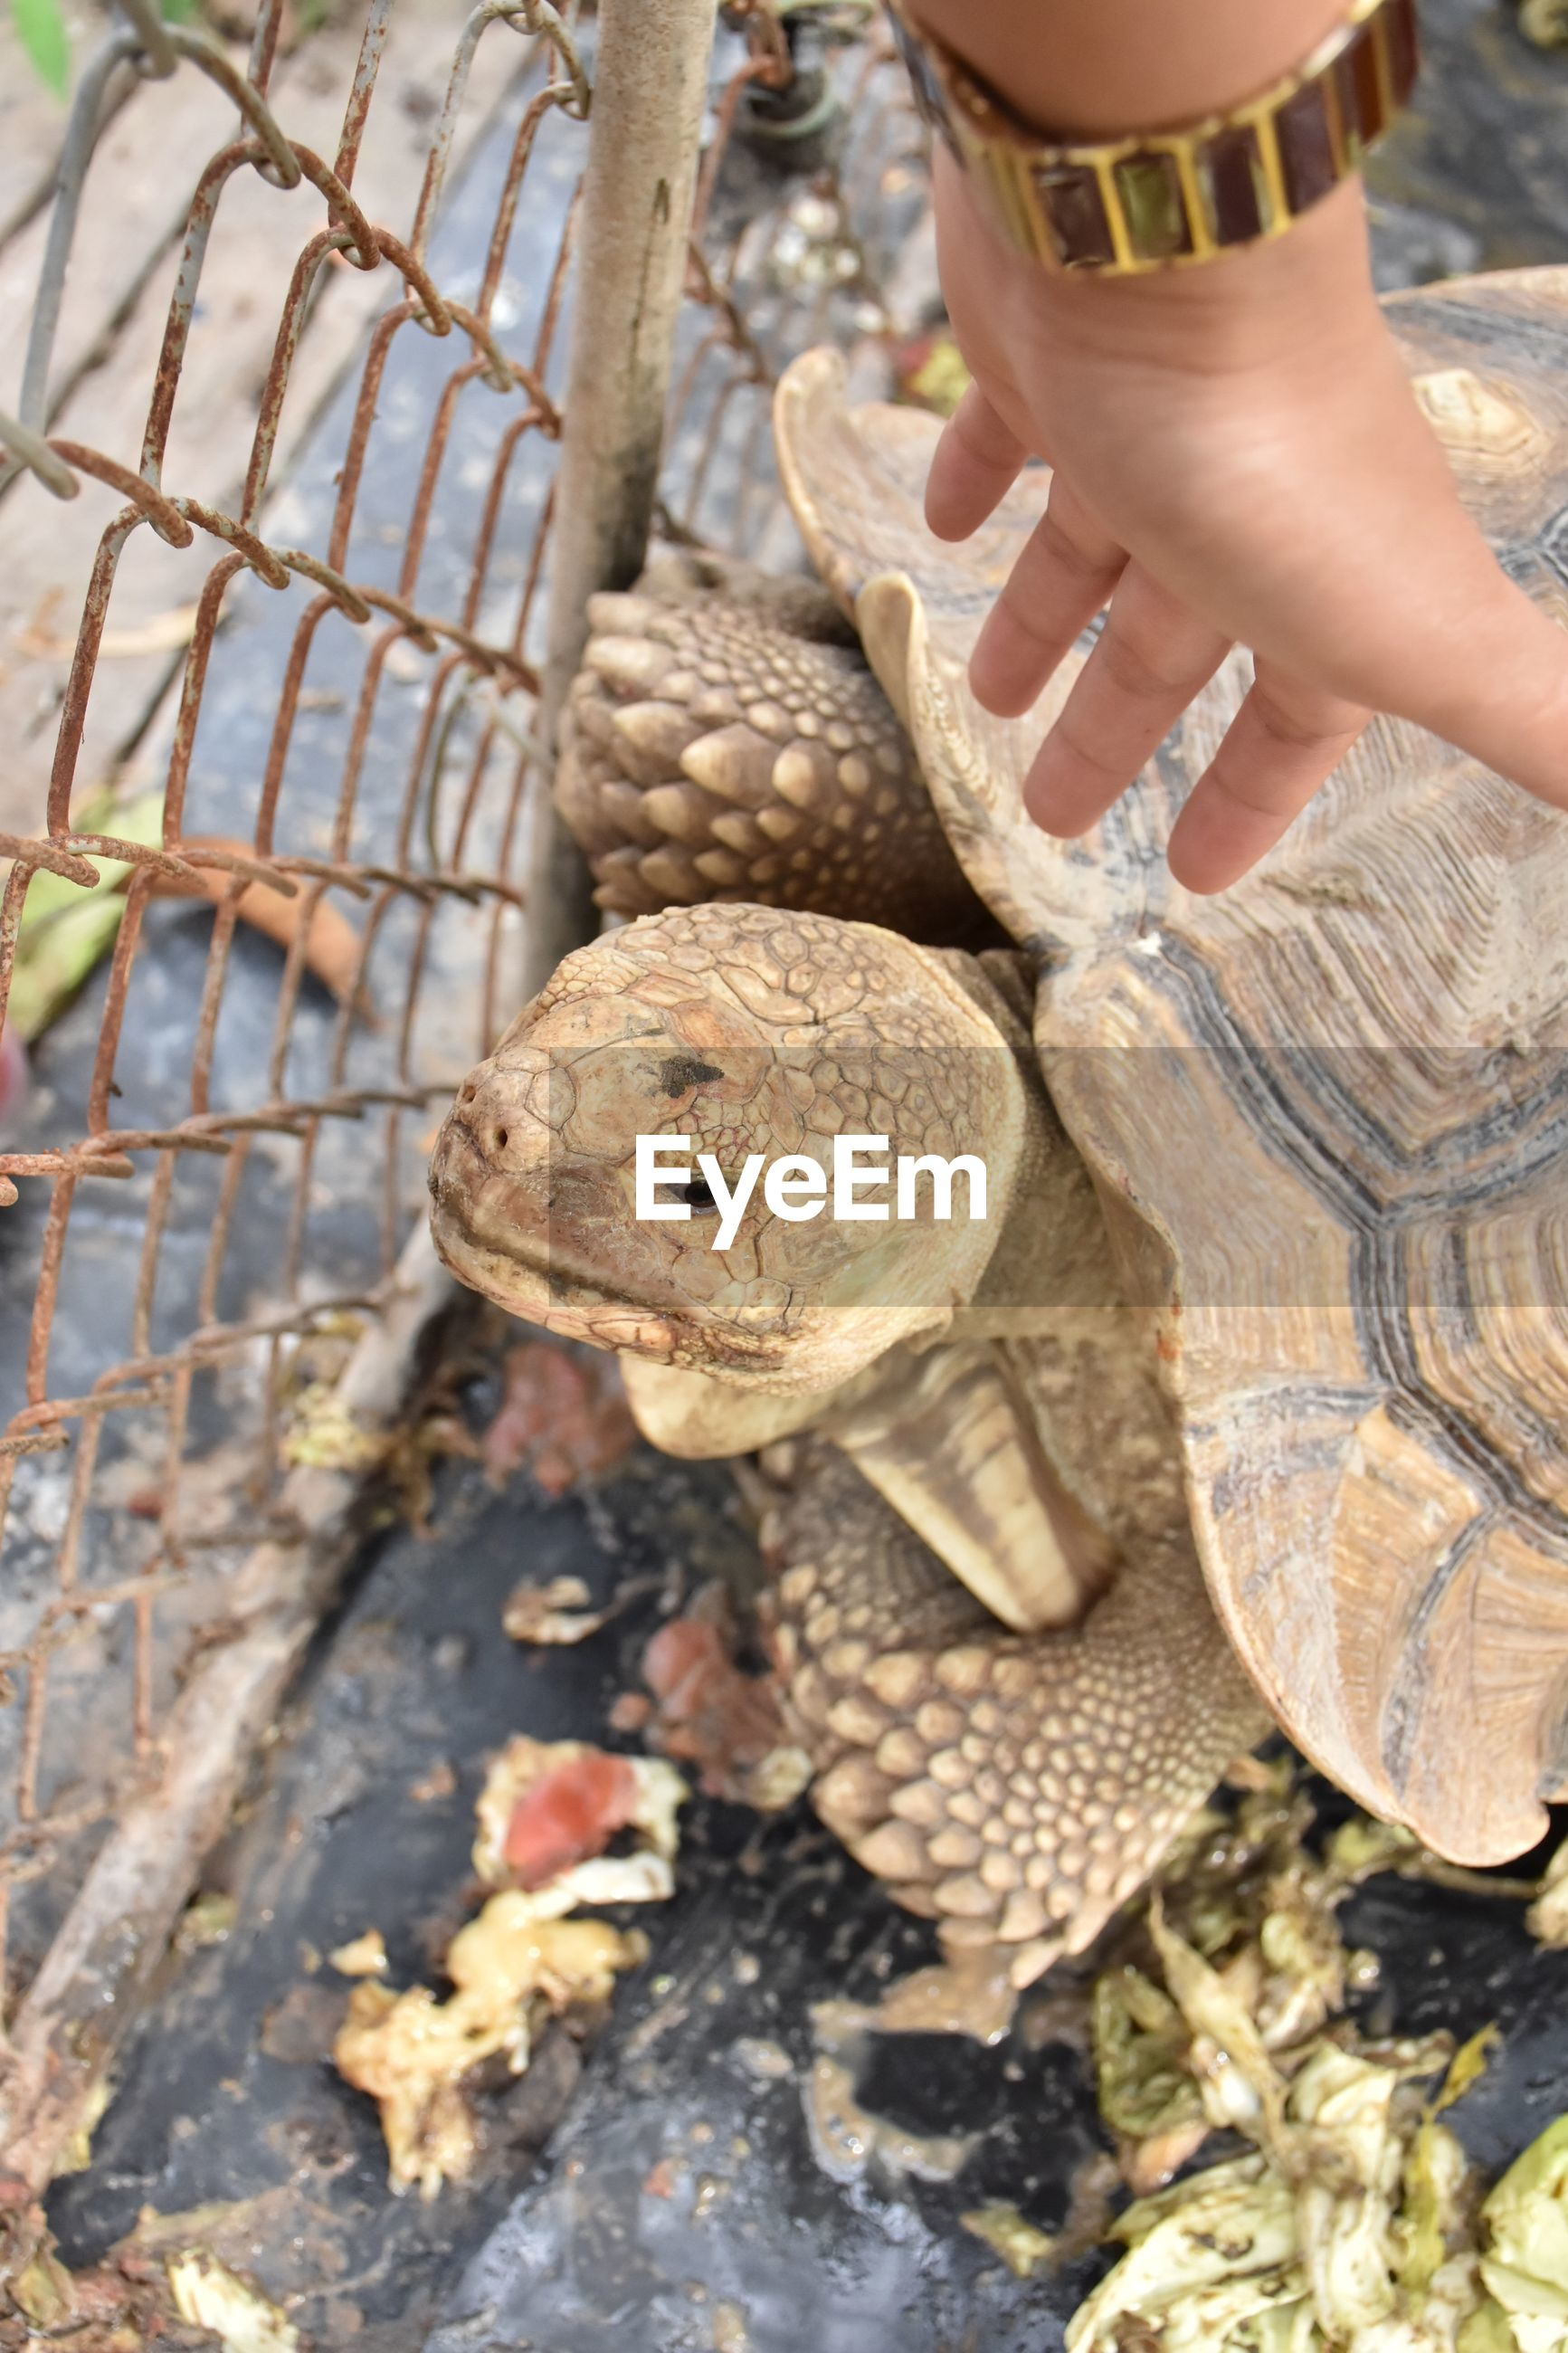 Cropped hand of woman reaching tortoise at zoo